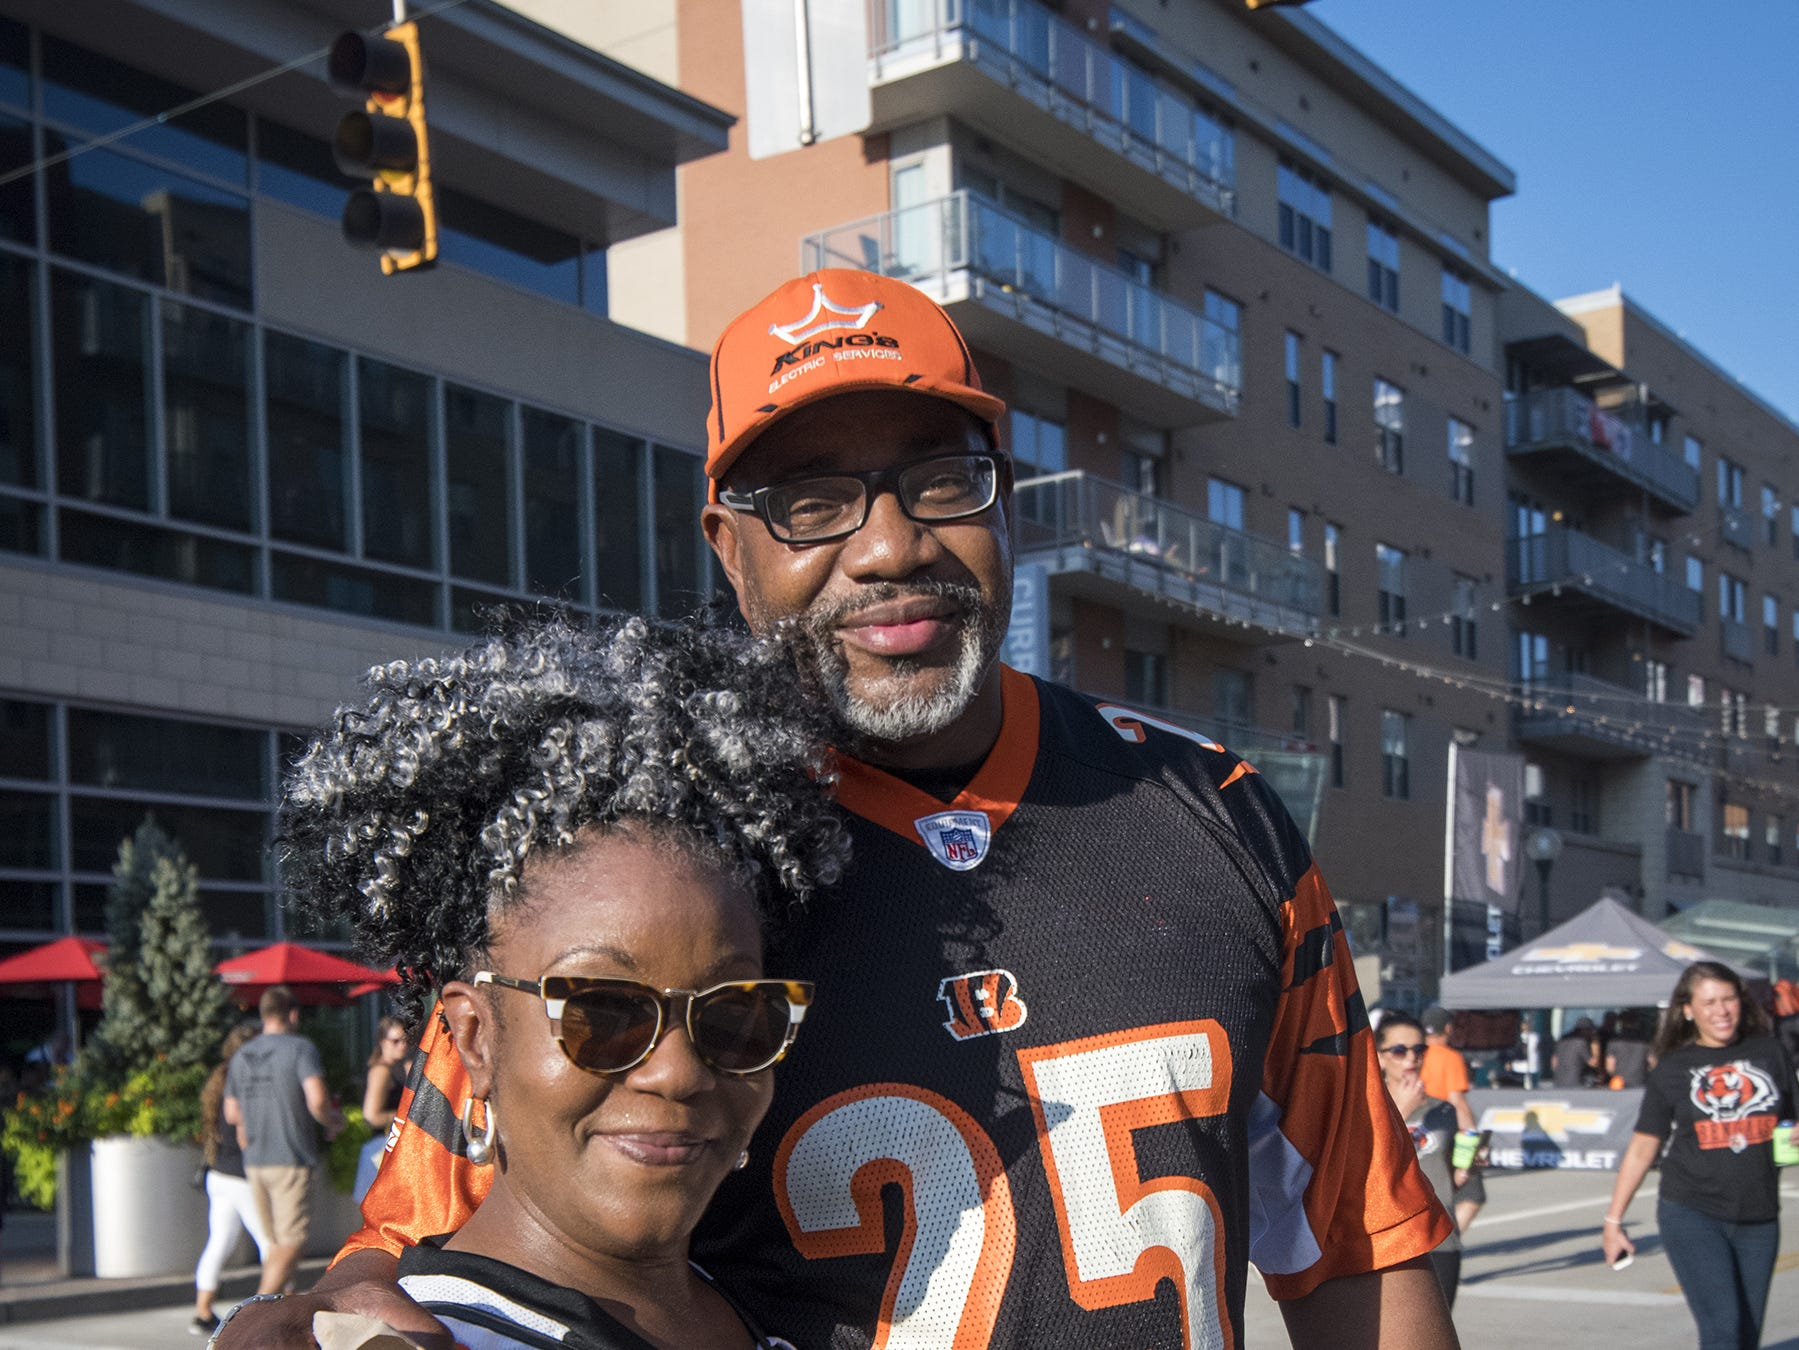 Angie Fairbanks and Fred Williams grab a drink at the Bud Light Tailgate zone before the Bengals game against the Baltimore Ravens Thursday, September 13, 2018 in Cincinnati, Ohio.